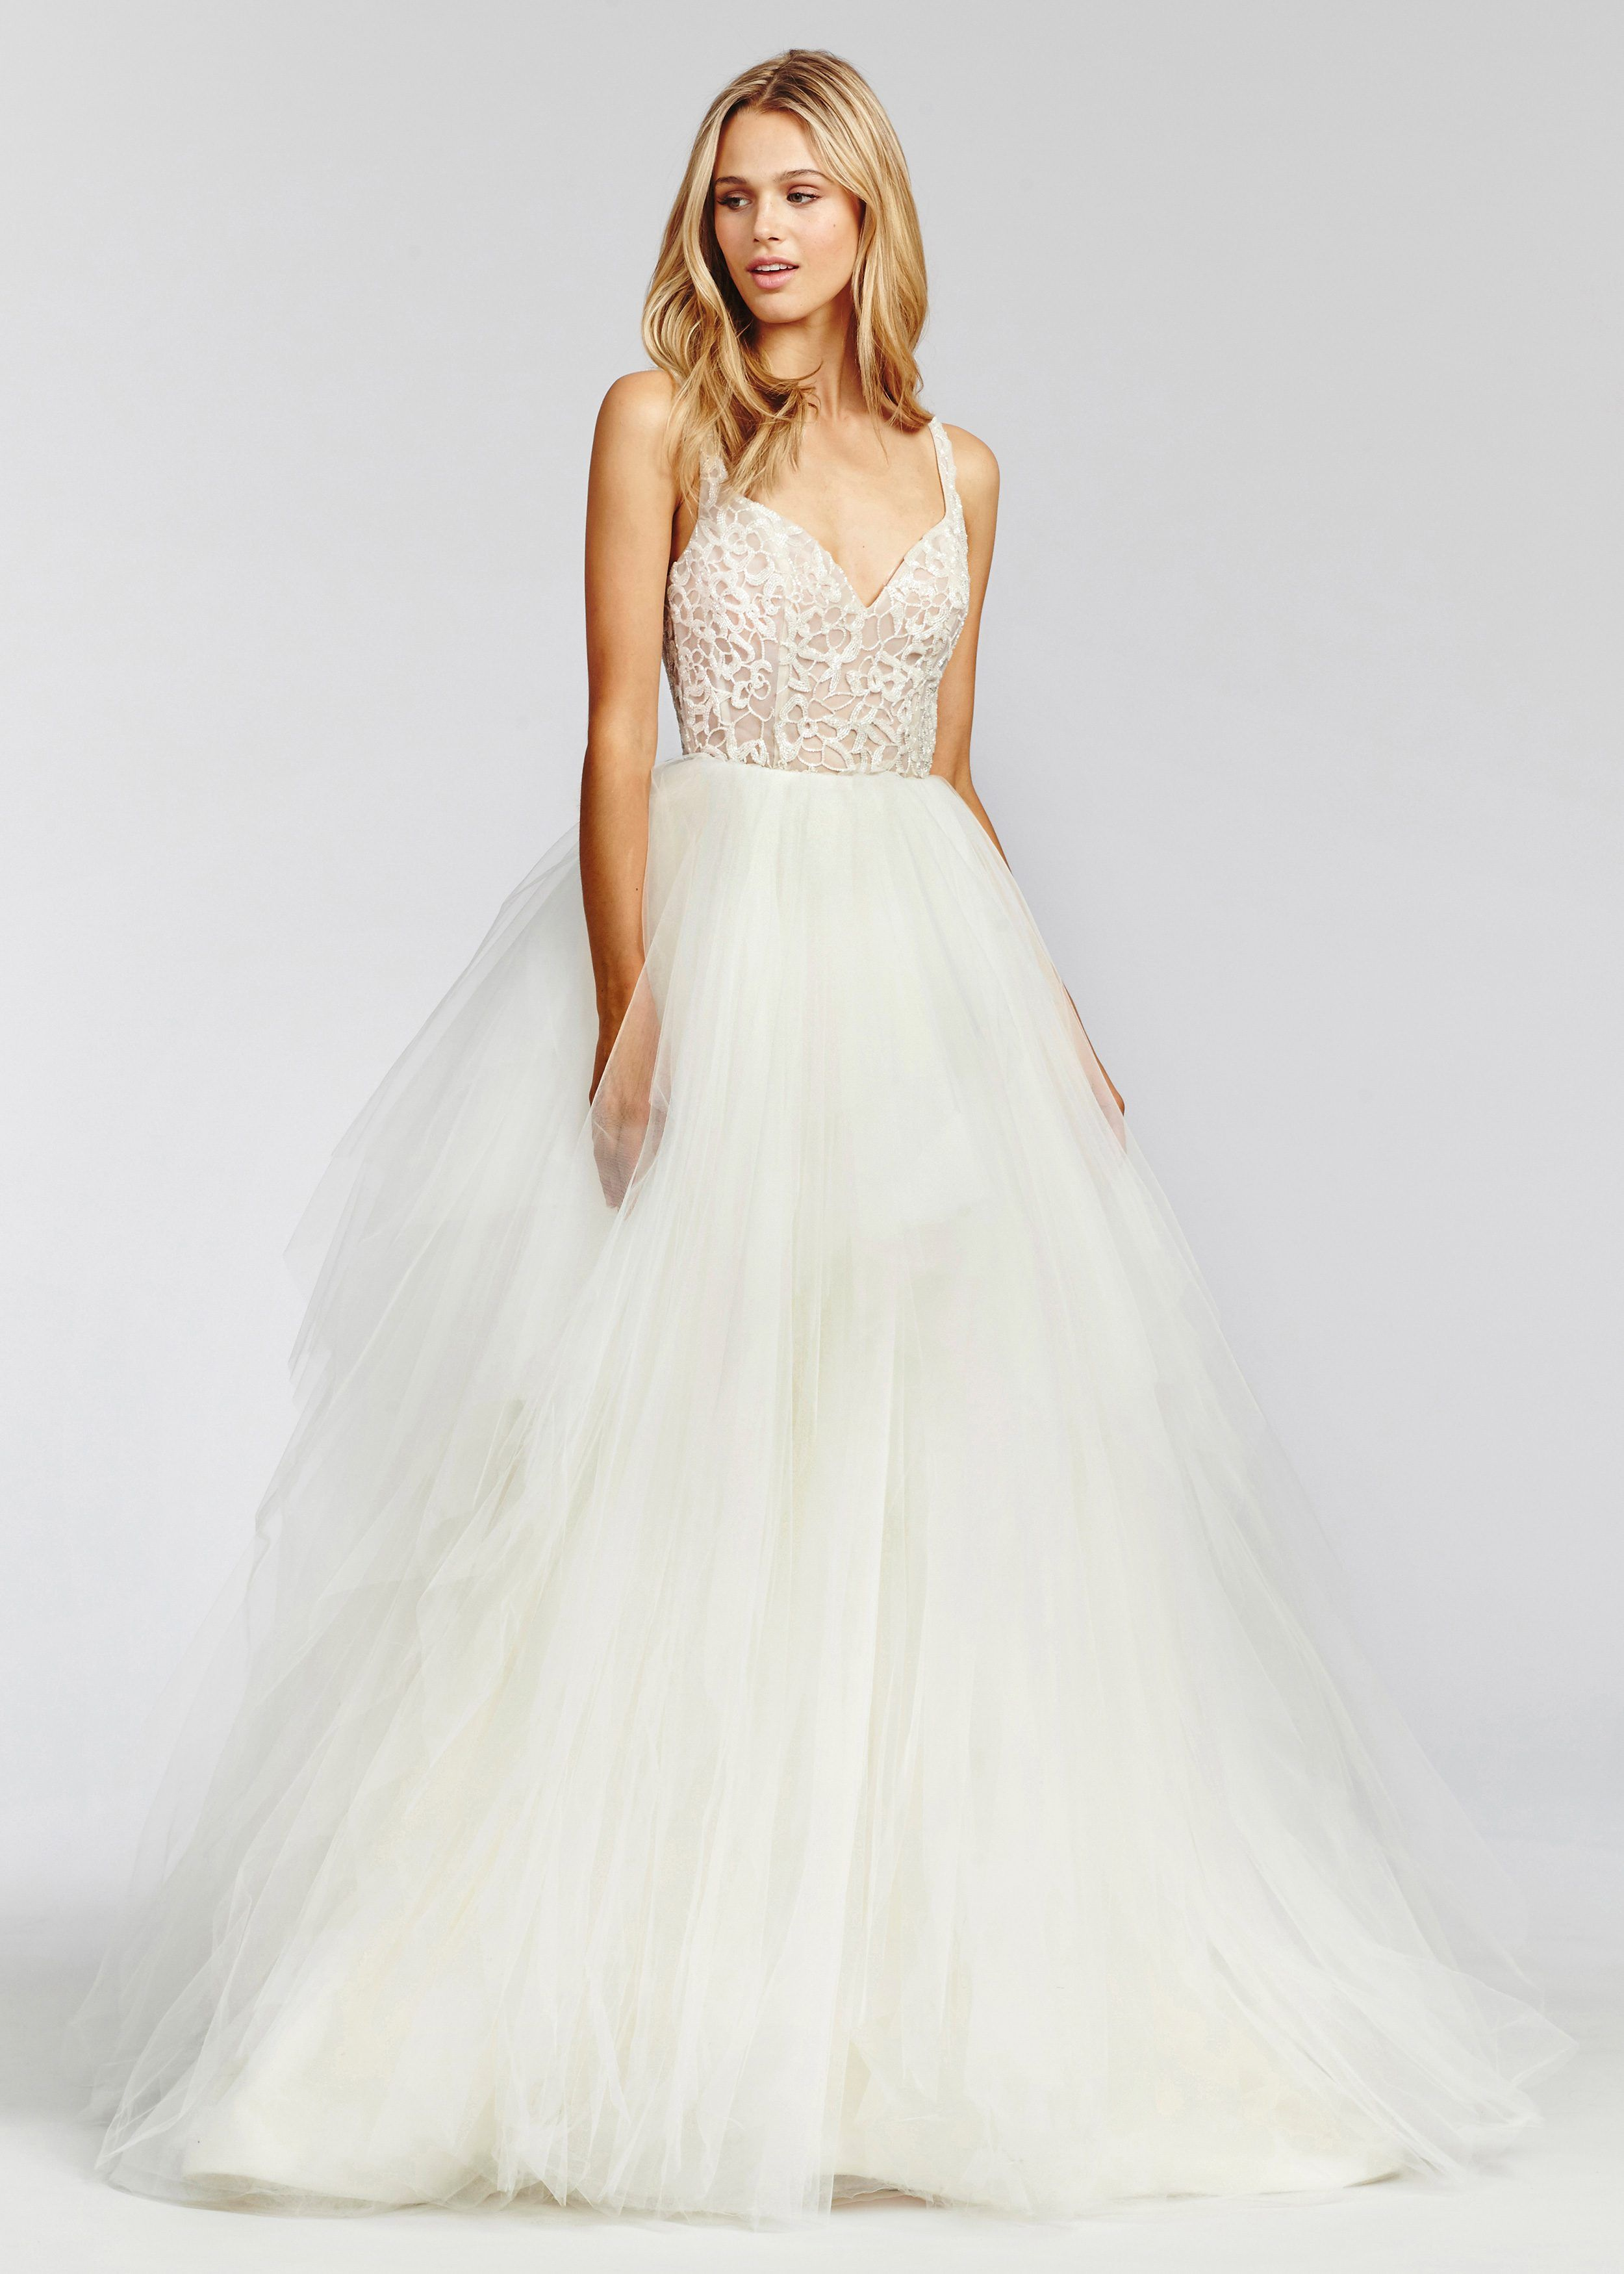 Bridal gowns and wedding dresses by jlm couture style 1657 scout bridal gowns and wedding dresses by jlm couture style 1657 scout ombrellifo Choice Image